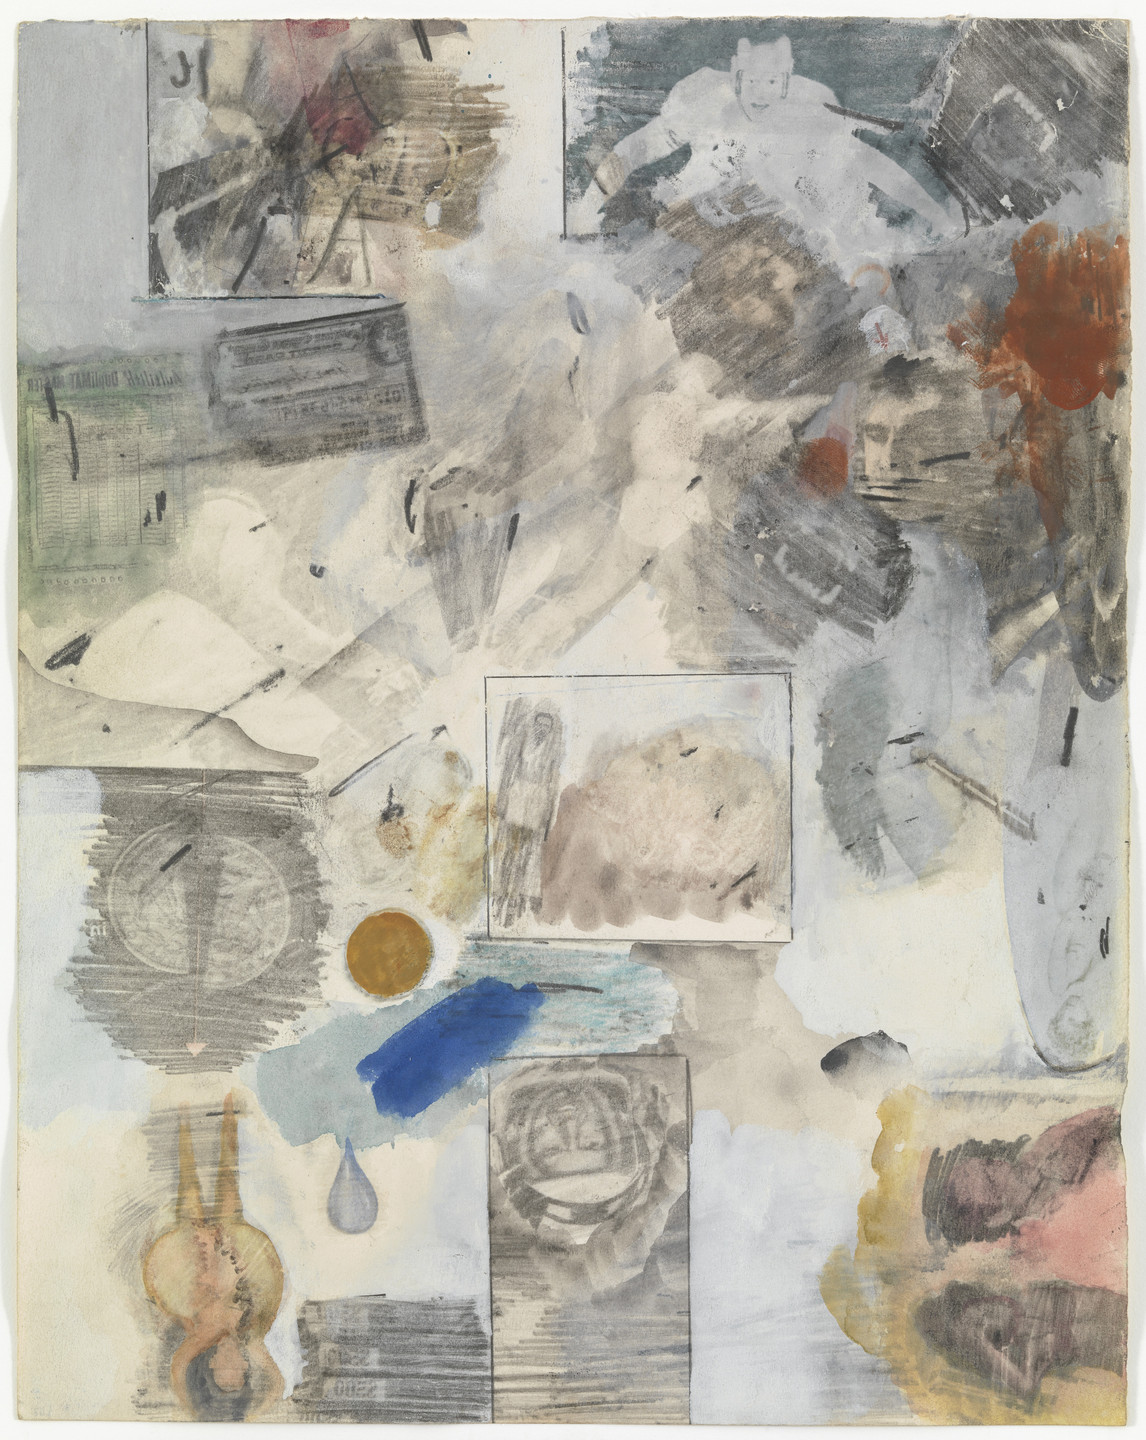 Robert Rauschenberg. Canto XXX: Circle Eight, Bolgia 10, The Falsifiers: The Evil Impersonators, Counterfeiters, and False Witnesses from the series Thirty- Four Illustrations for Dante's Inferno. (1959-60)